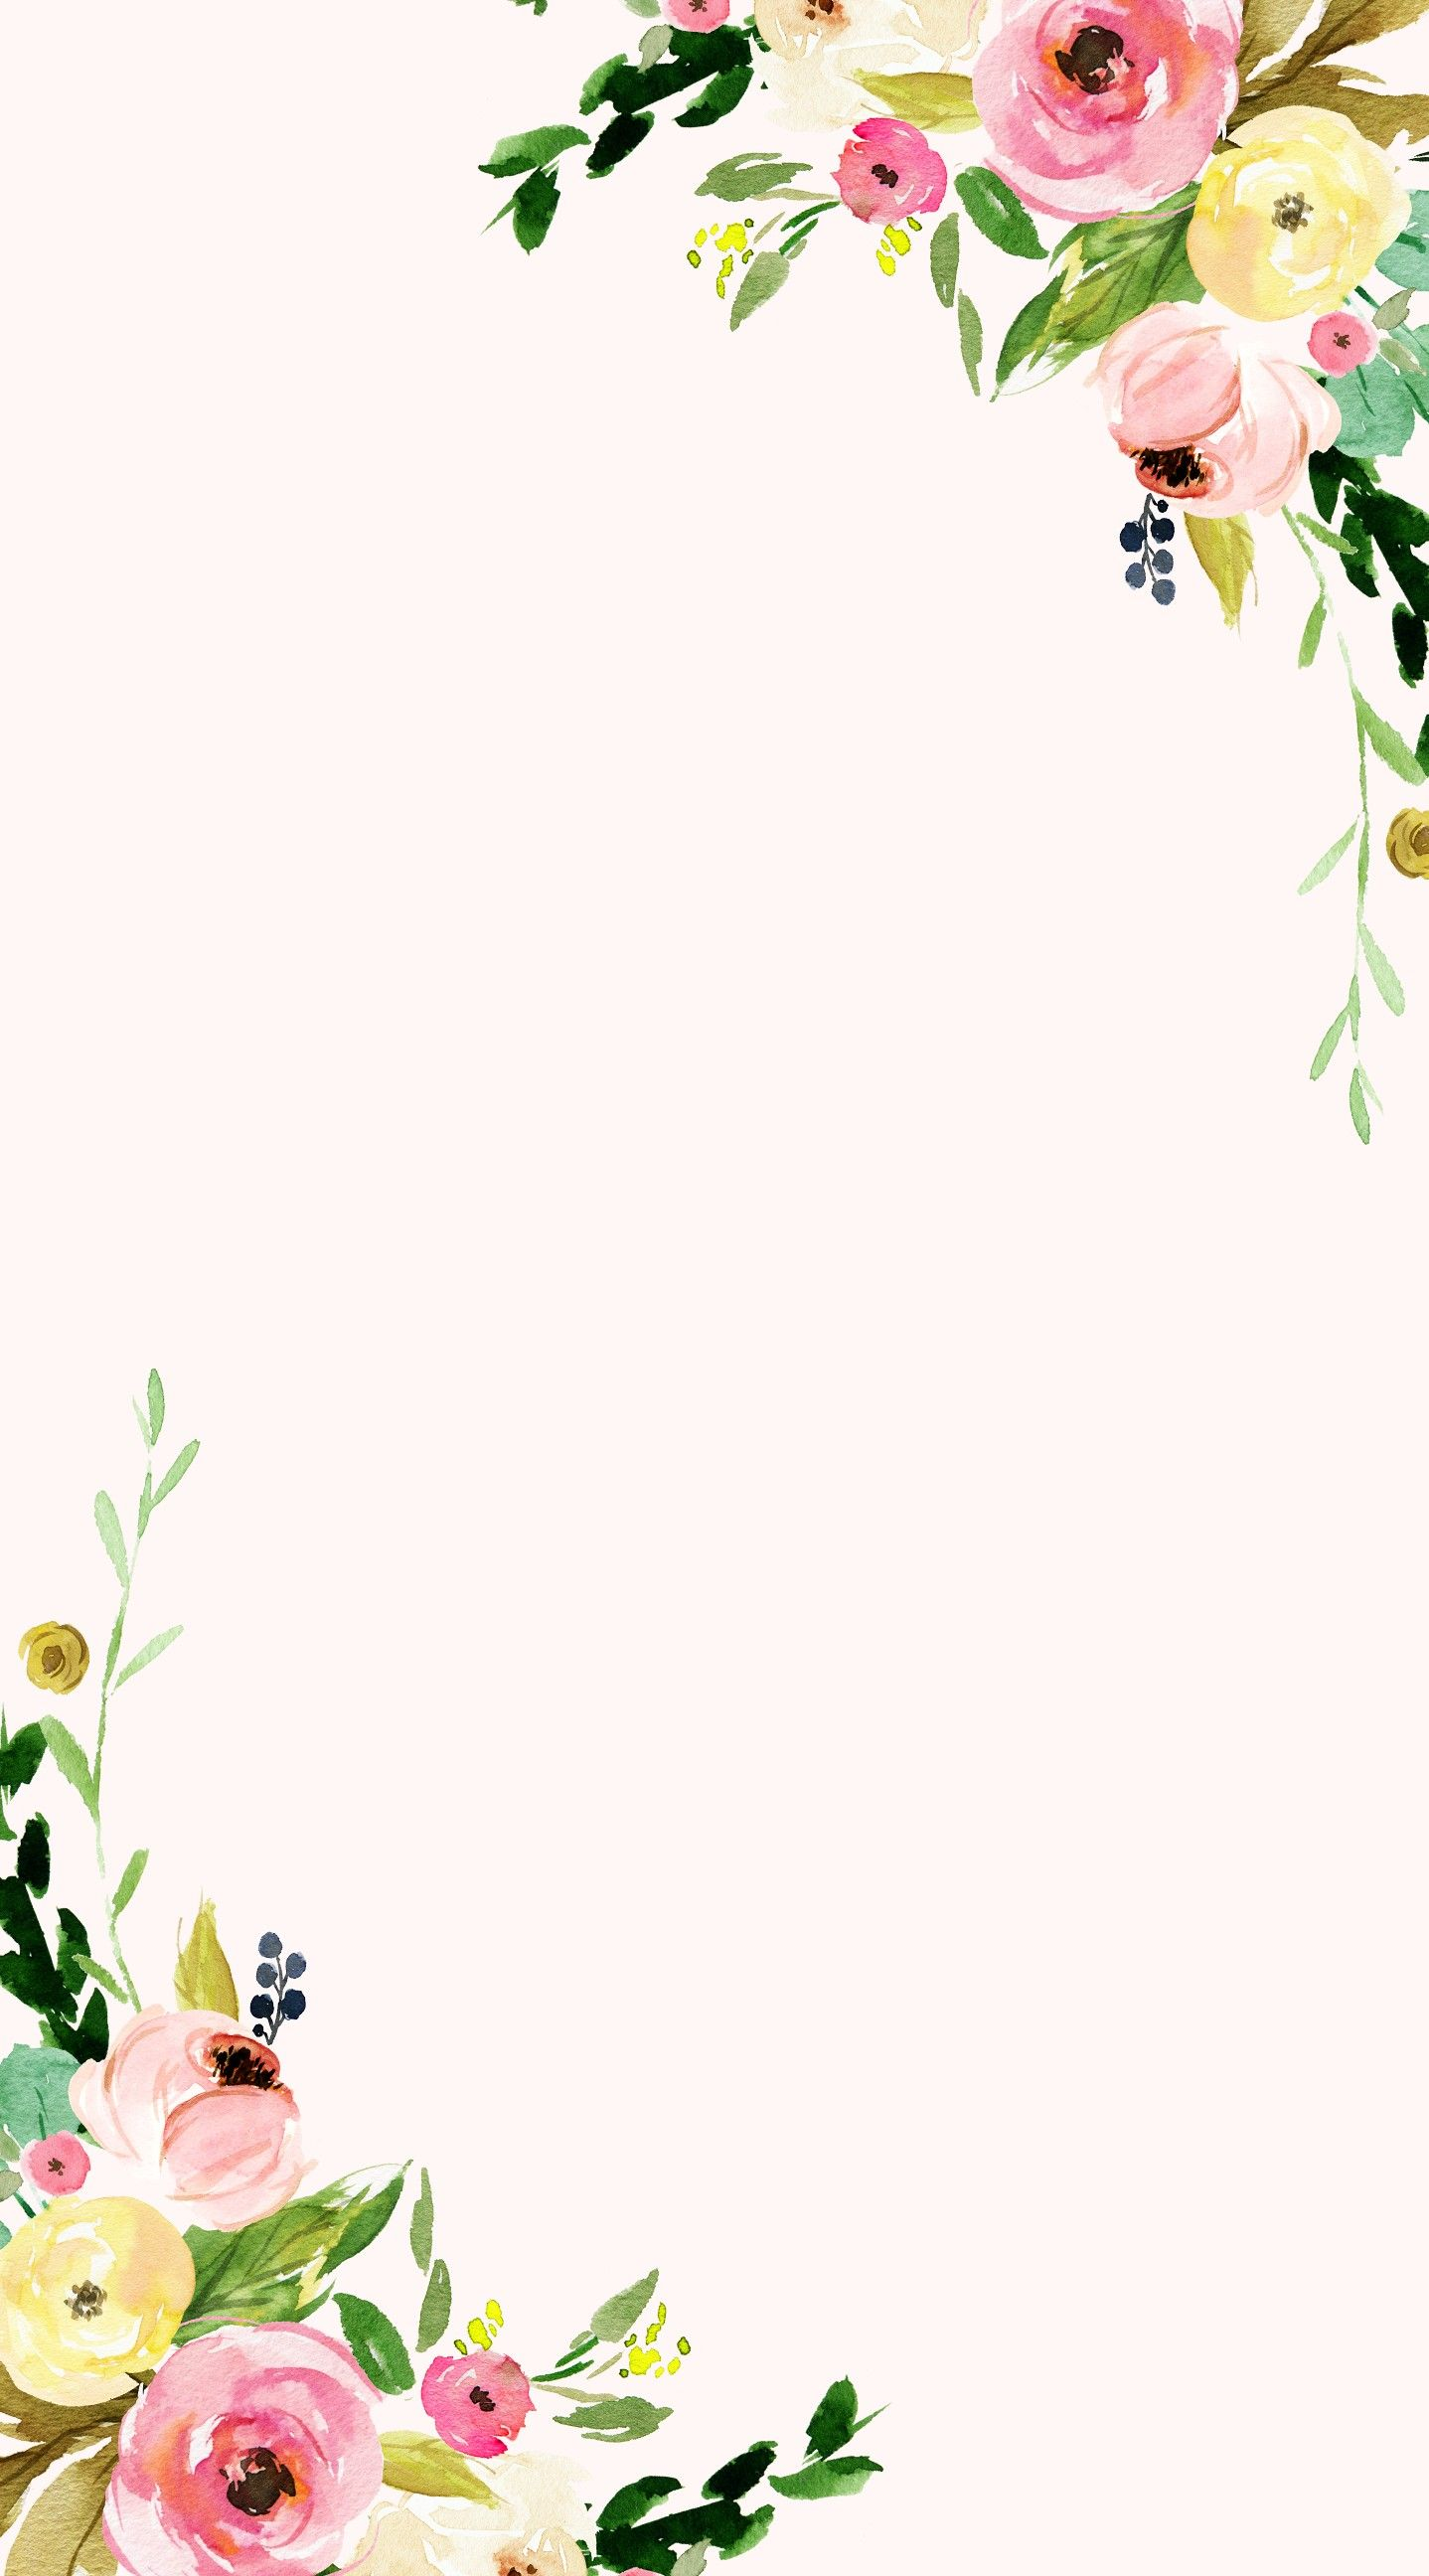 Floral On White Background Wallpaper Floral Watercolor Floral